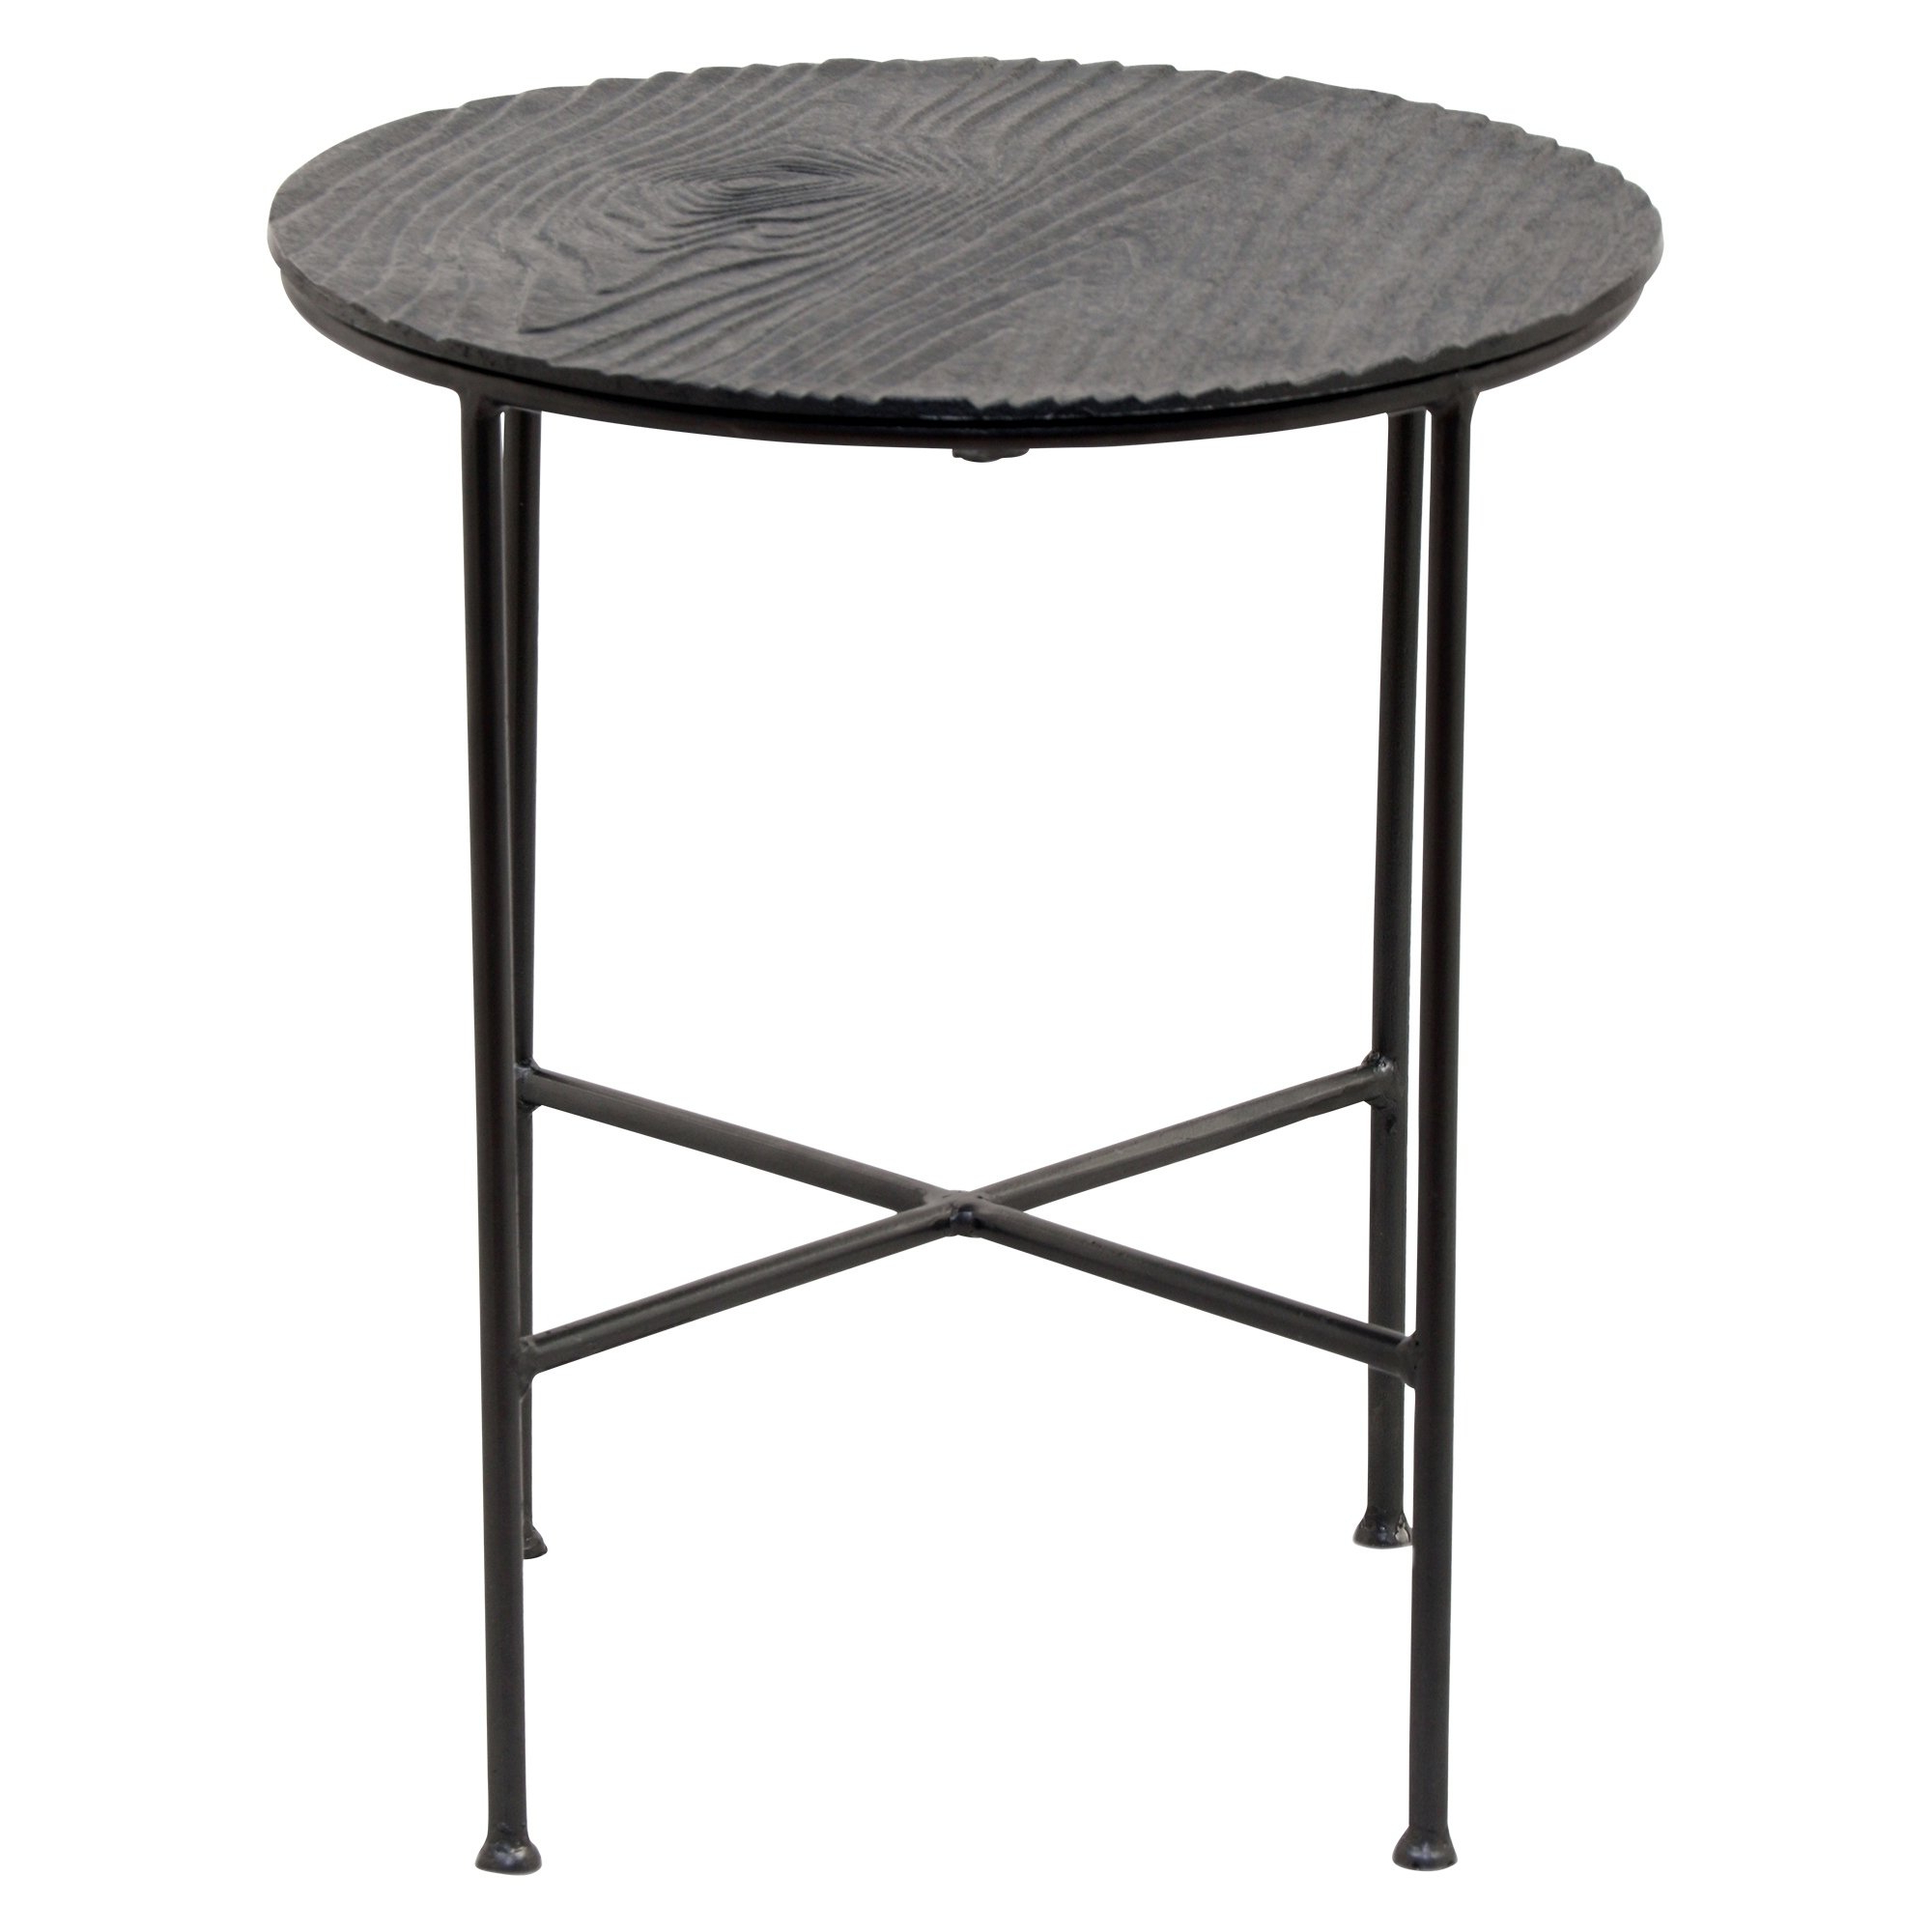 Shop Renwil Bale Grey Aluminum Round Accent Table – Free Shipping In Popular Bale Rustic Grey Round Cocktail Tables With Storage (Gallery 7 of 20)